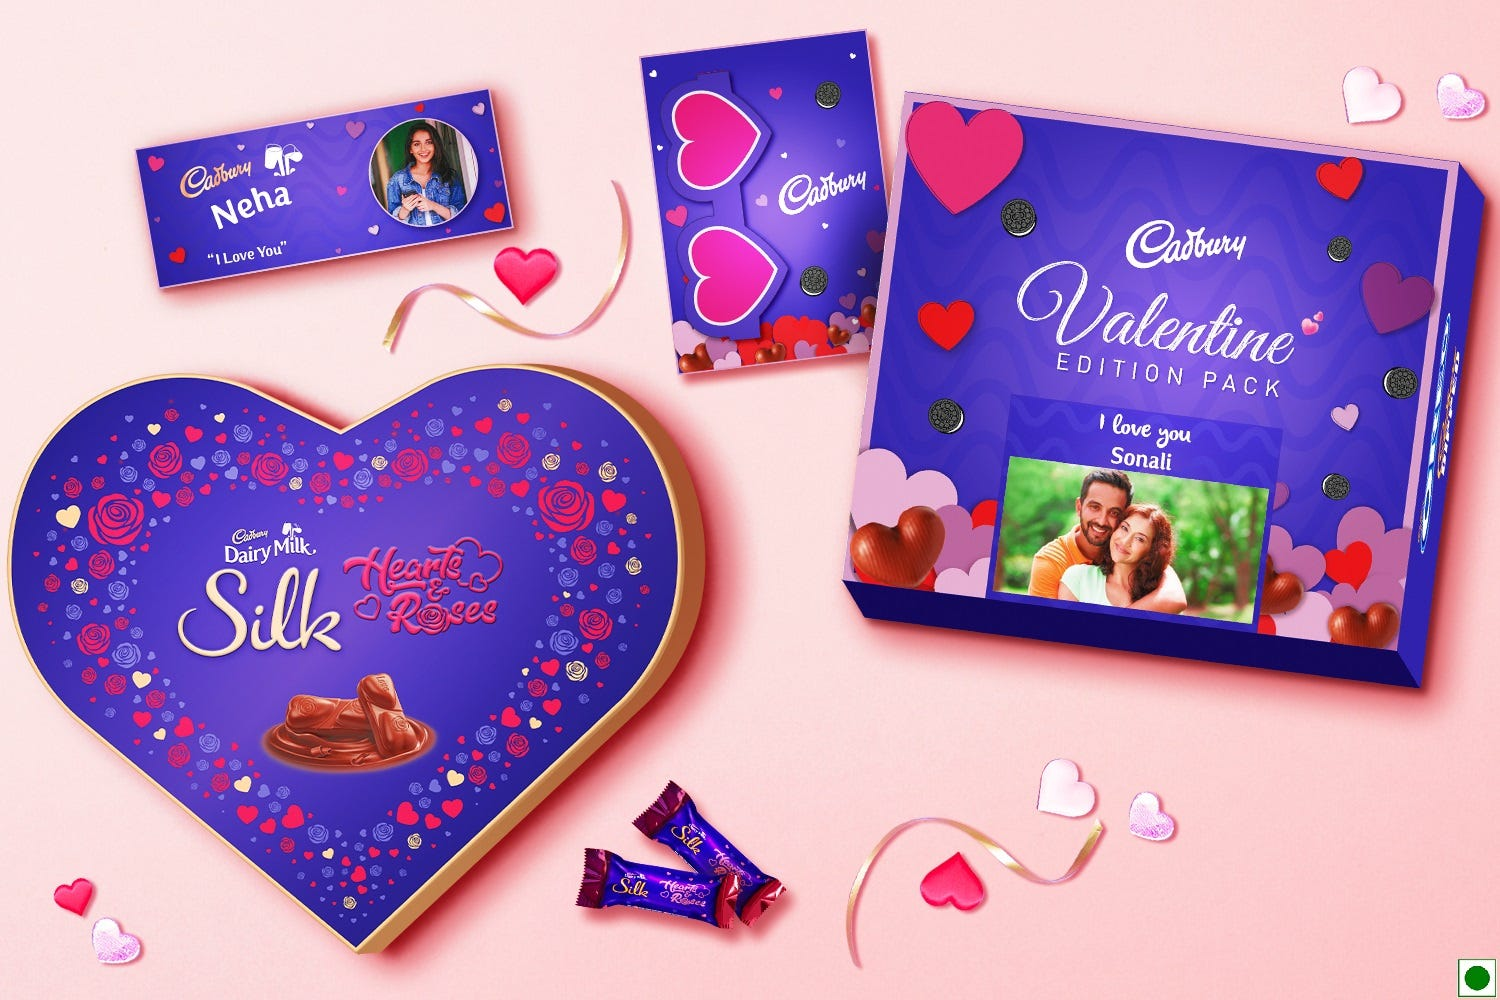 Best personalised Valentine's Day gifts